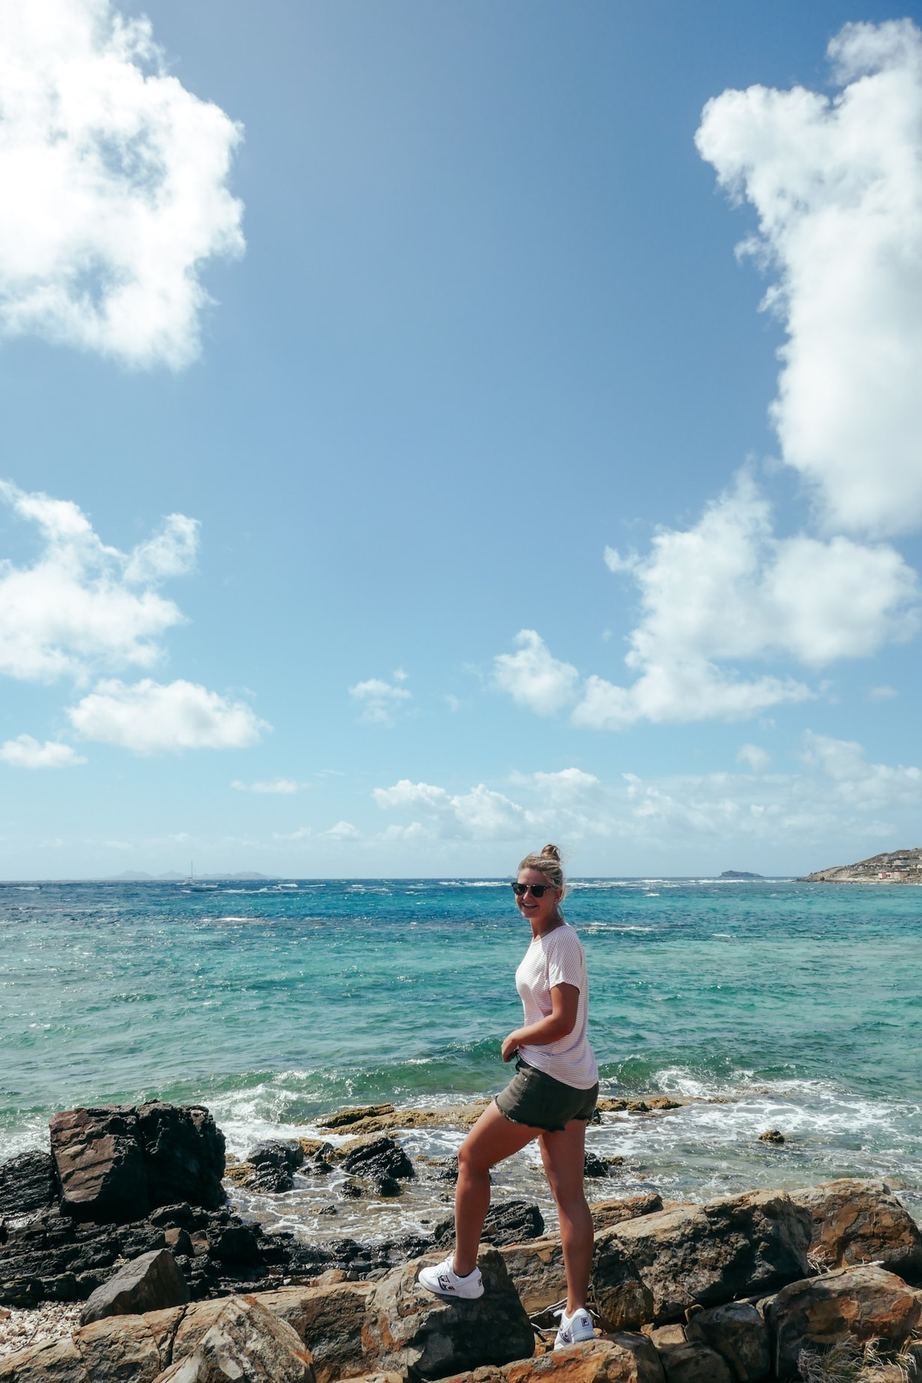 A young woman standing on rocks over the ocean smiling at the camera in Sint Maarten